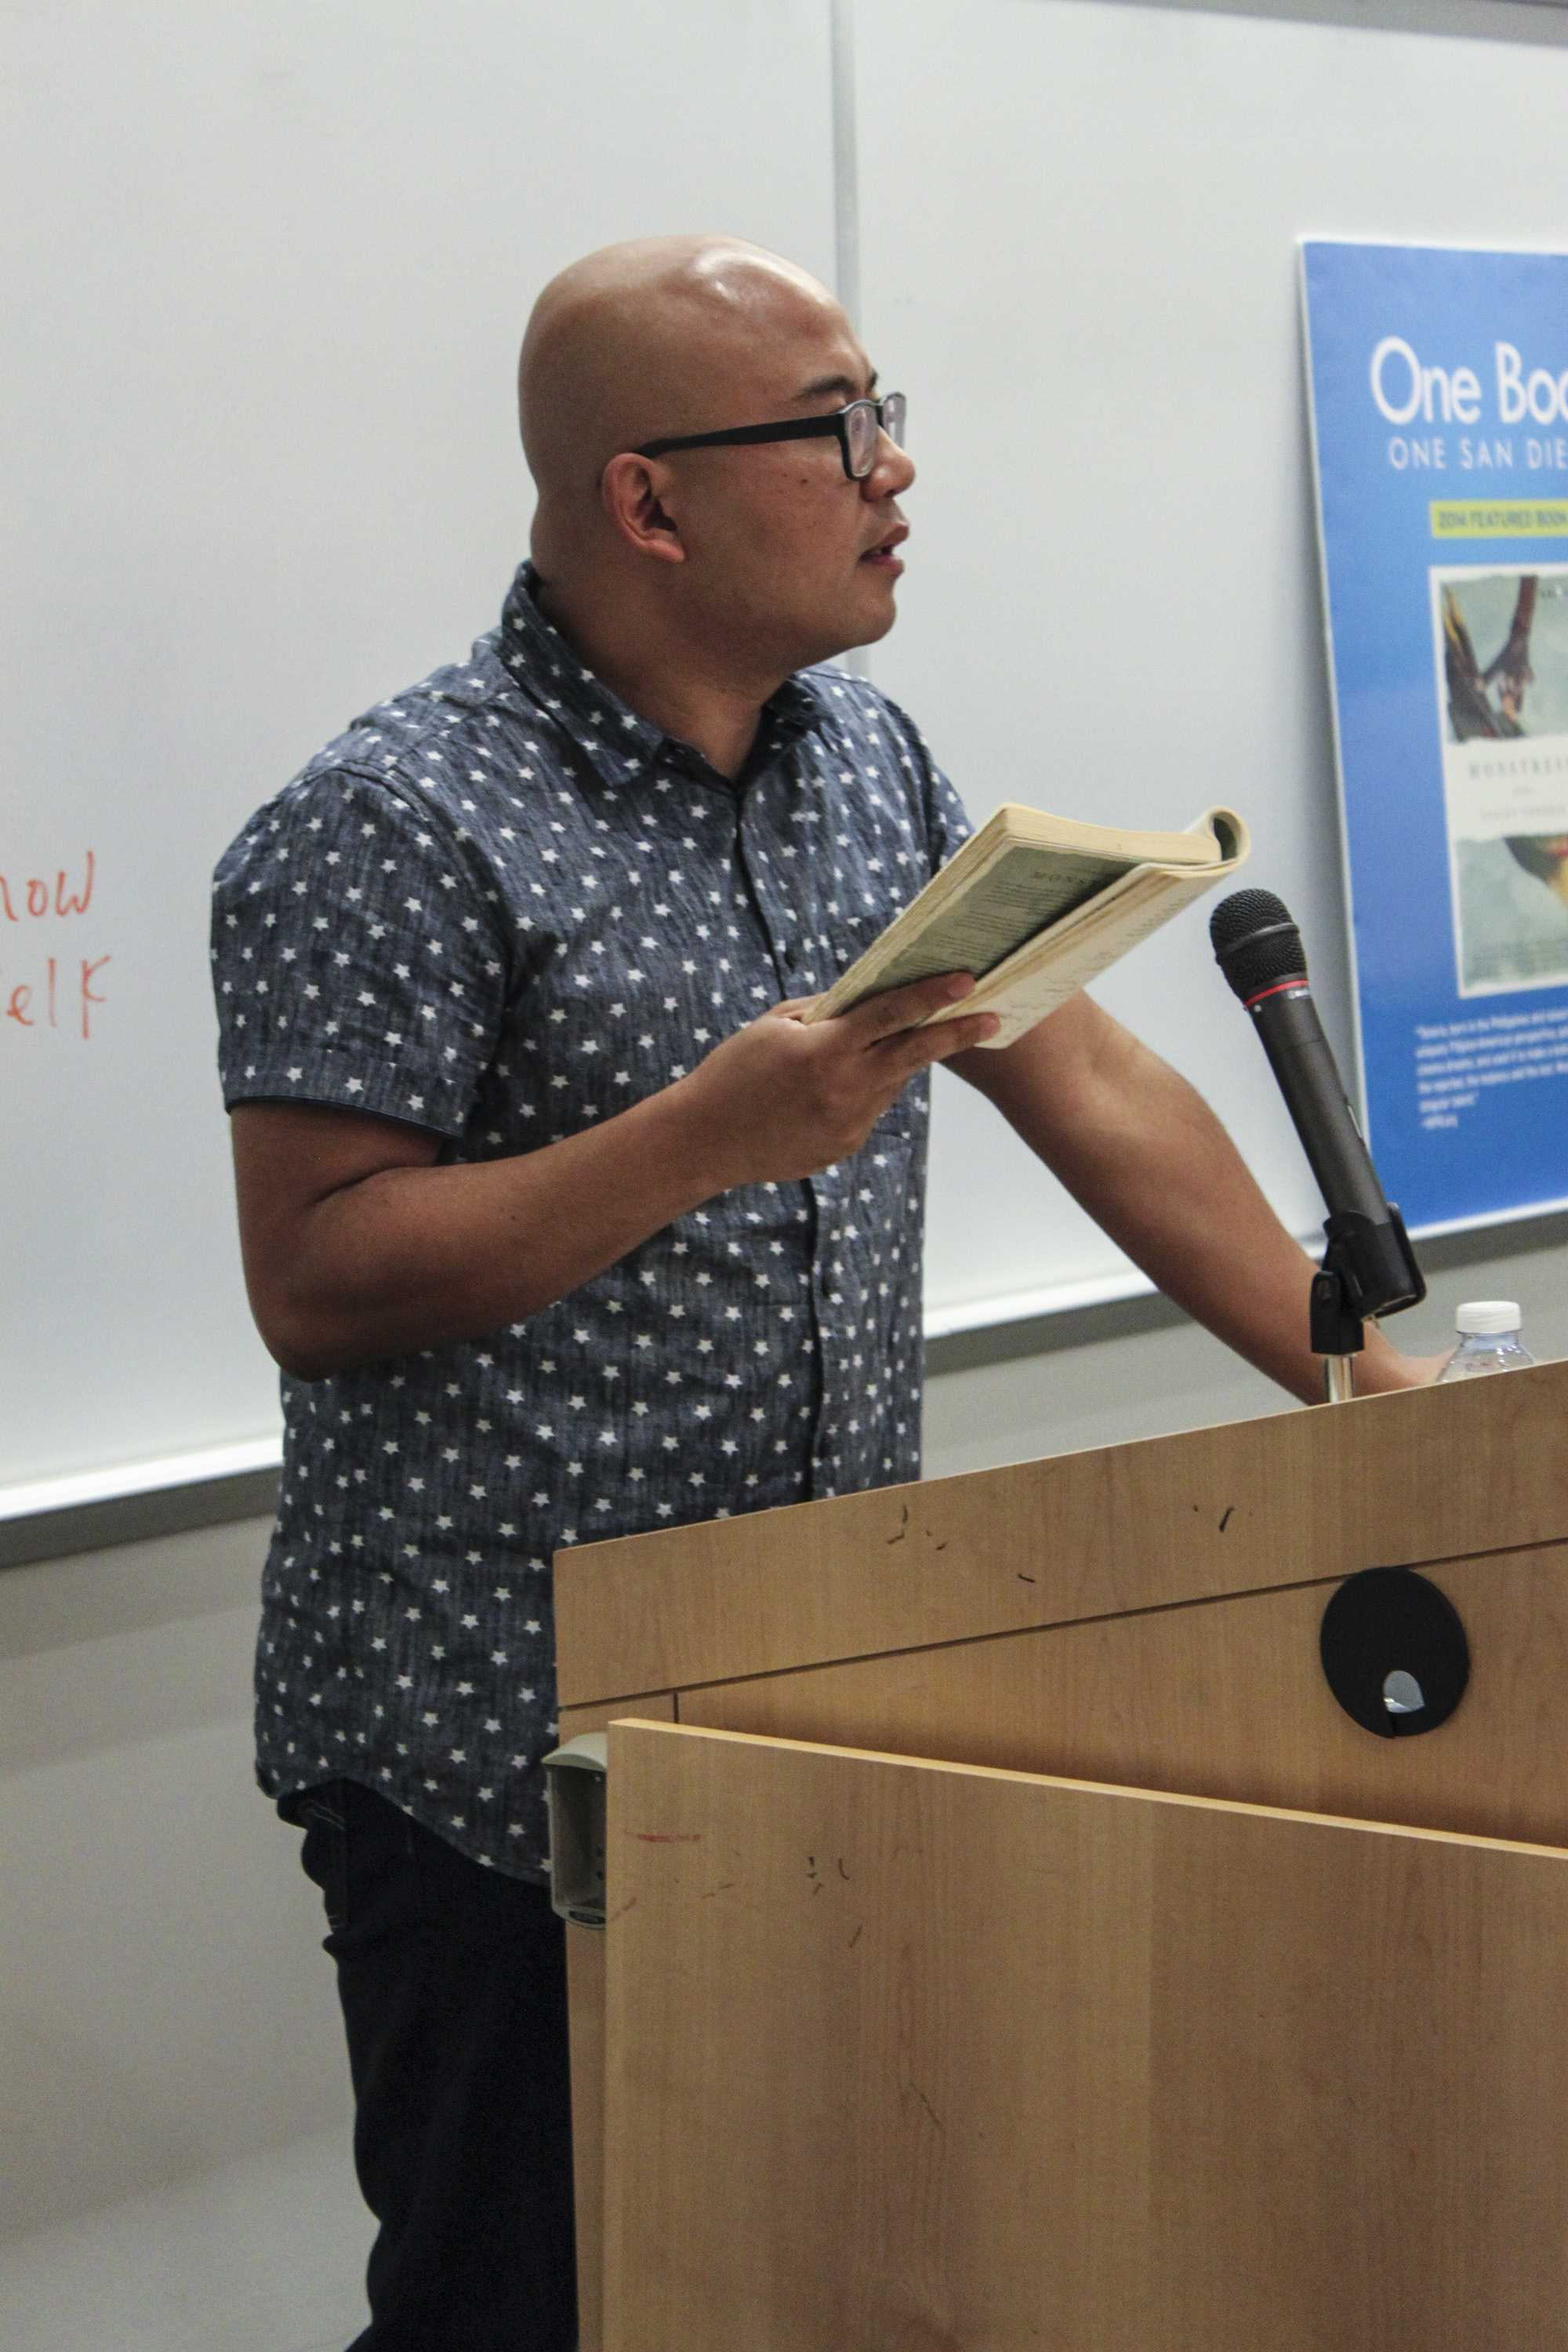 """Author Lysley Tenorio reads excerpts from his book """"Monstress,"""" the 2014 One Book, One San Diego selection in V-101 during the Ninth Annual San Diego City College International Book Fair Oct. 16. Photo credit: Miguel Cid"""